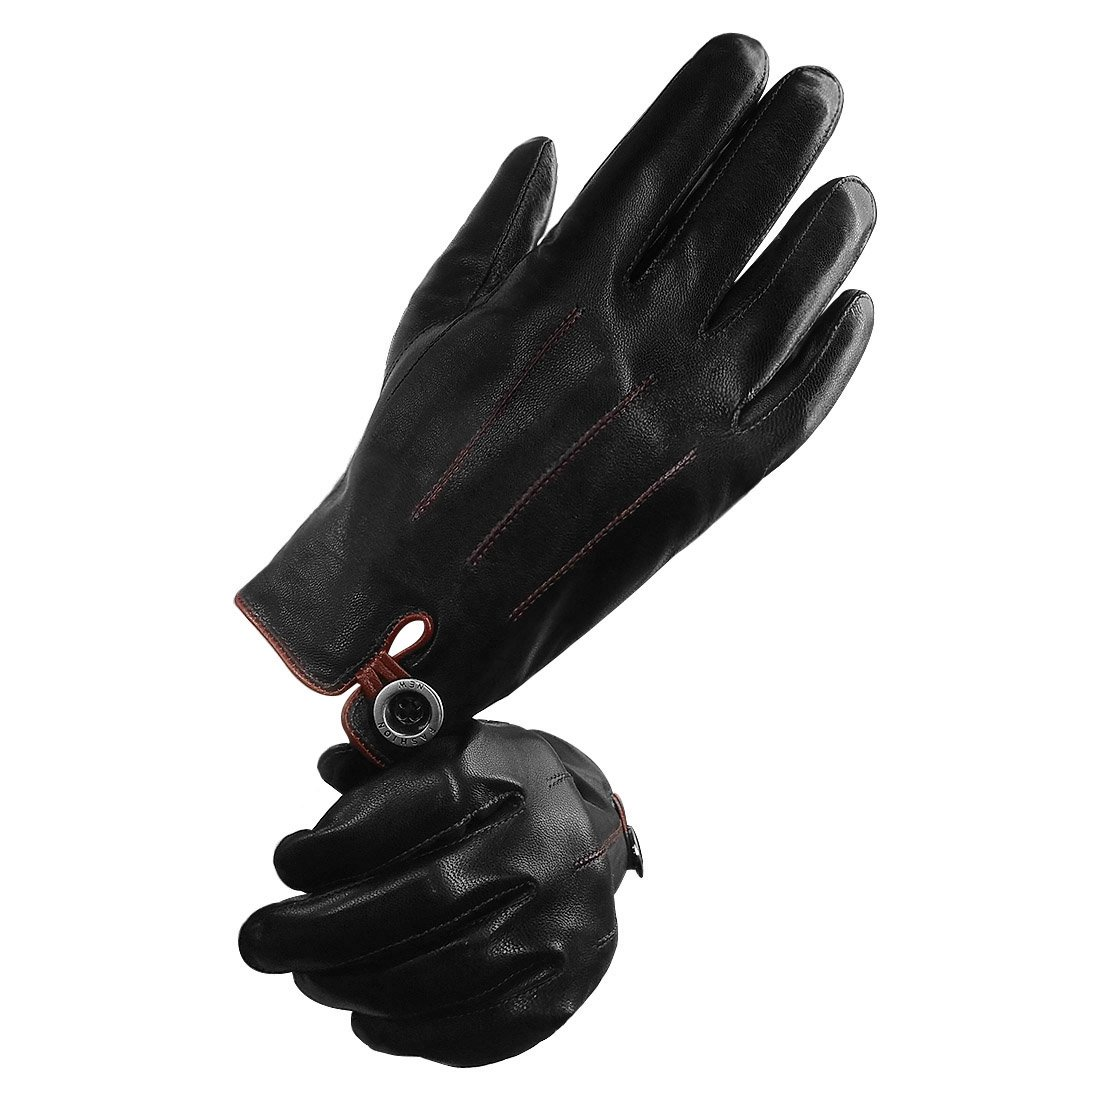 0e455040a12e1 LETHMIK Men's Genuine Leather Gloves Winter Touchscreen Stylish Warm  Driving Gloves at Amazon Men's Clothing store: